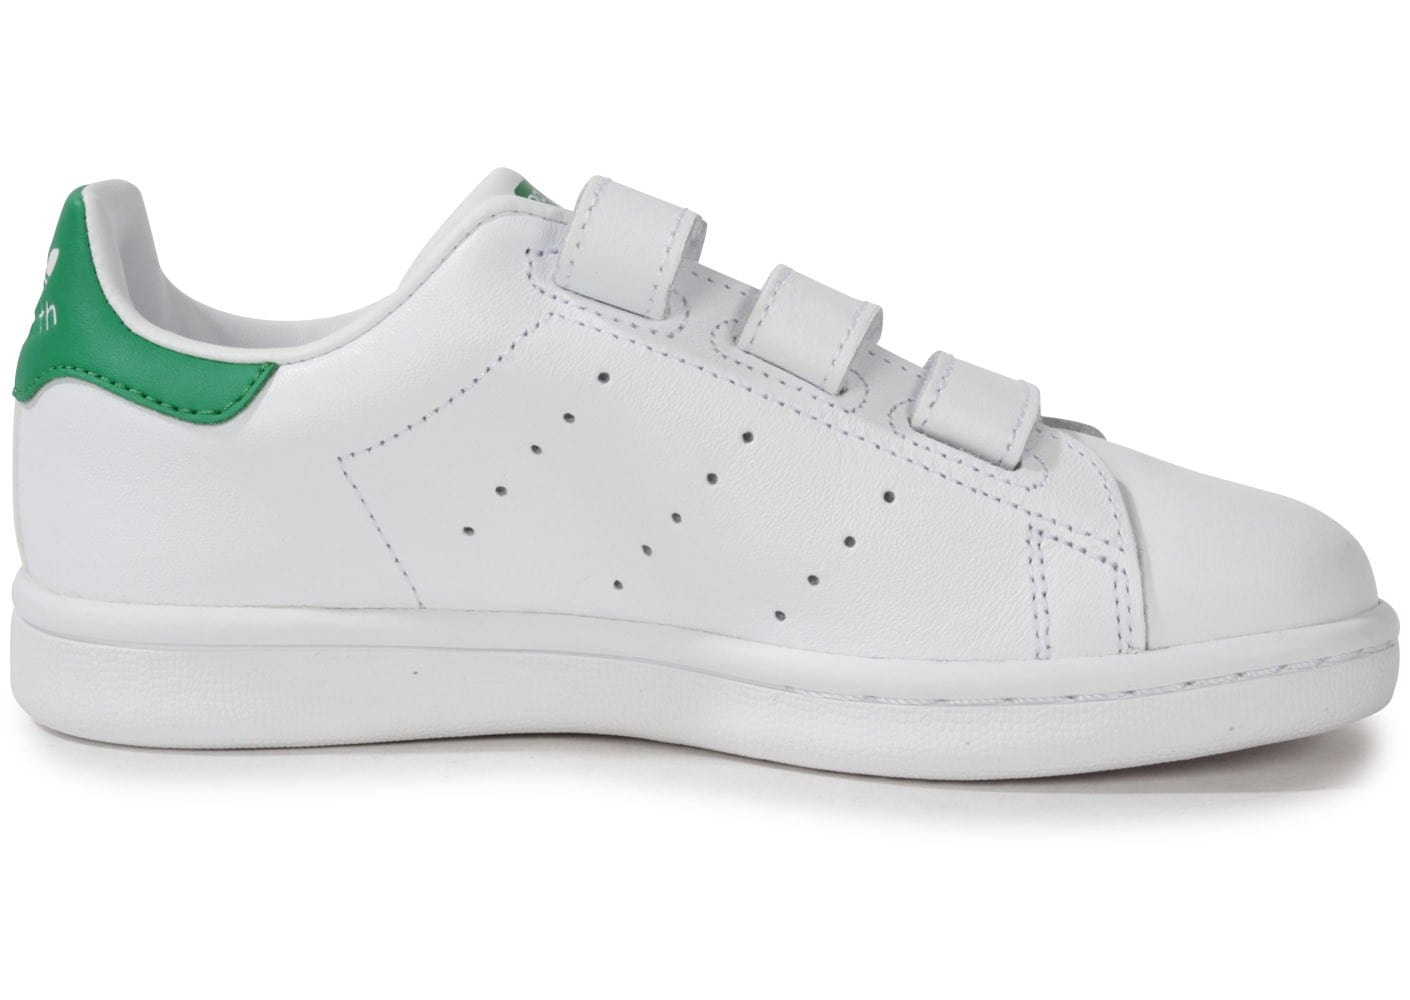 Smith Blanche Scratch Stan Chaussures Adidas Verteamp; Enfant 4Rcq53AjL